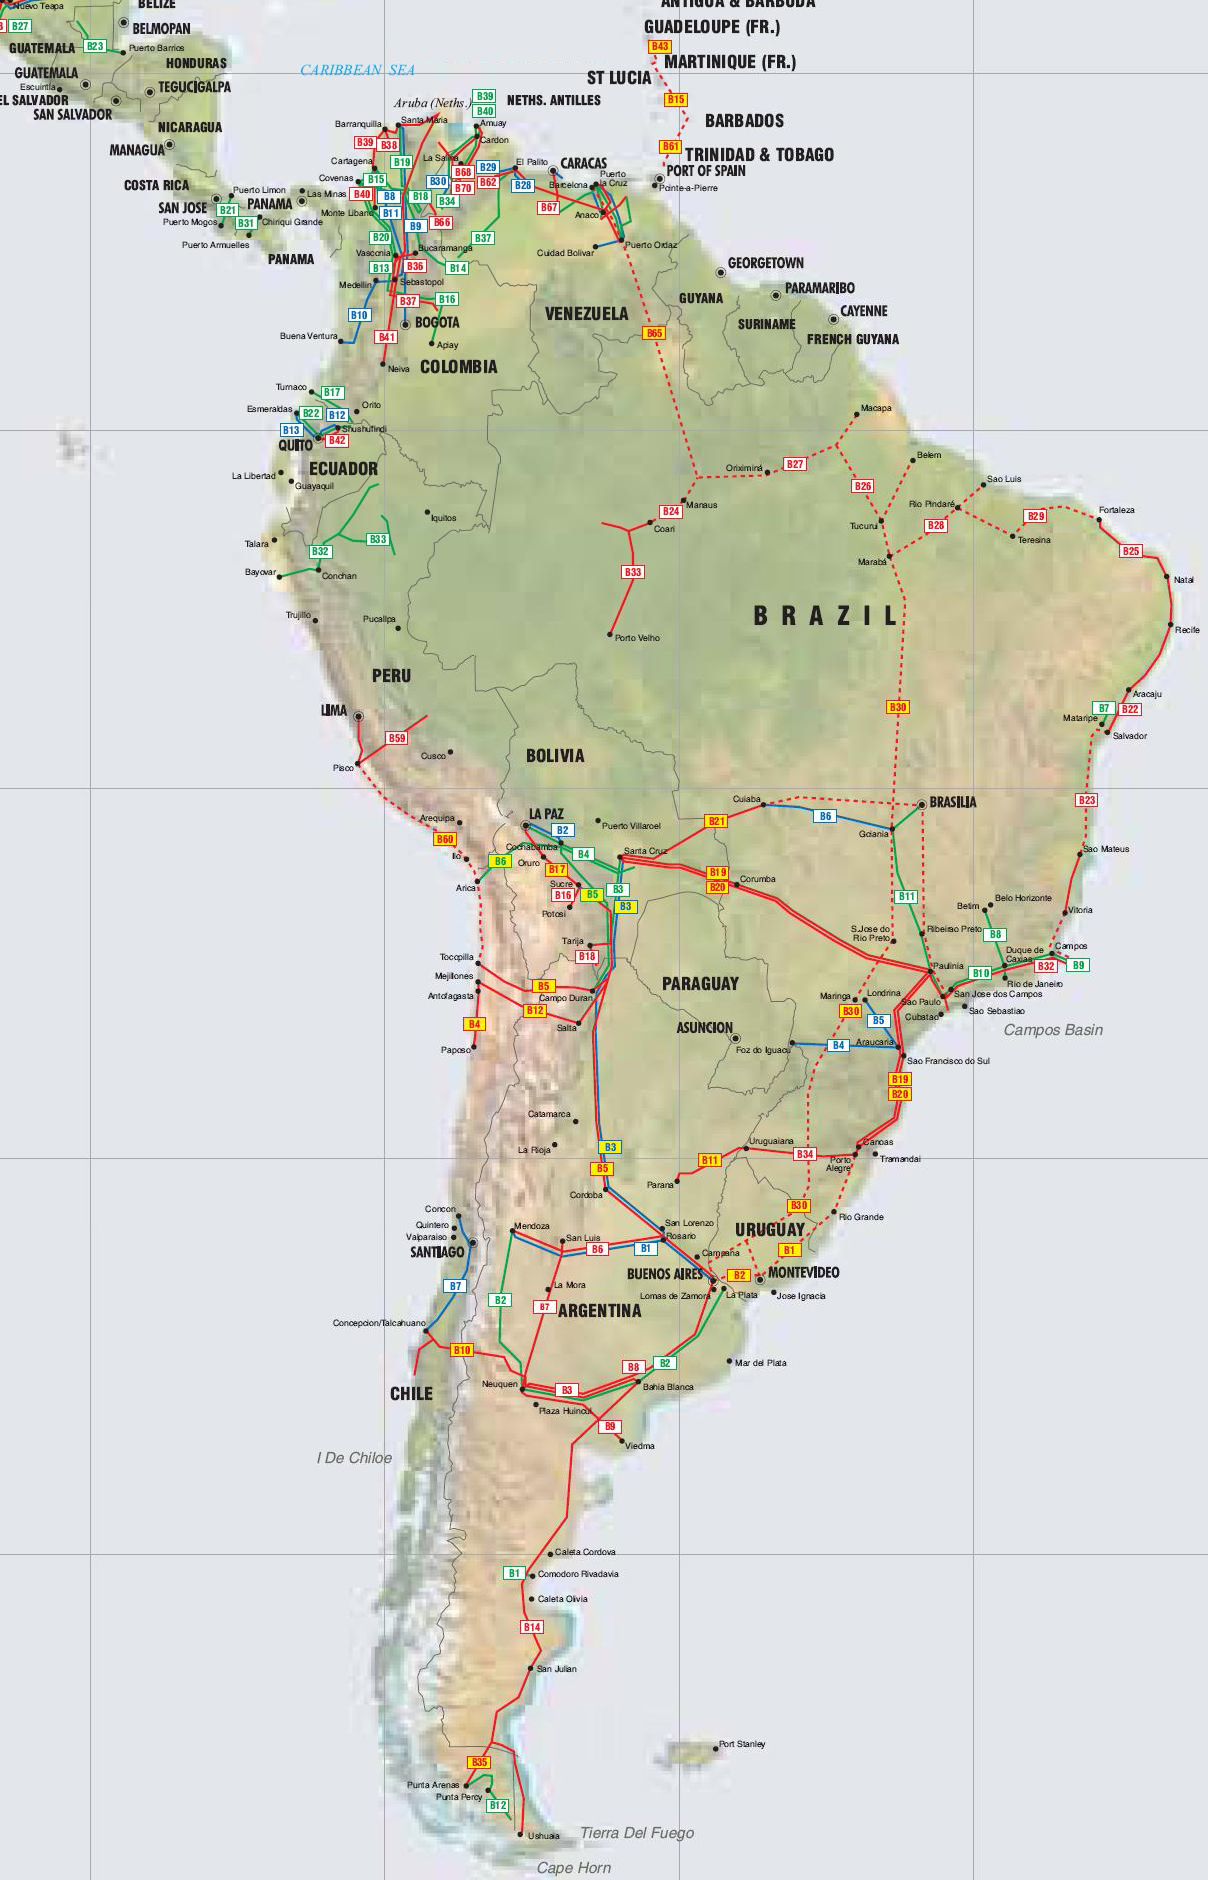 Map Of America And Caribbean.Central America Caribbean And South America Pipelines Map Crude